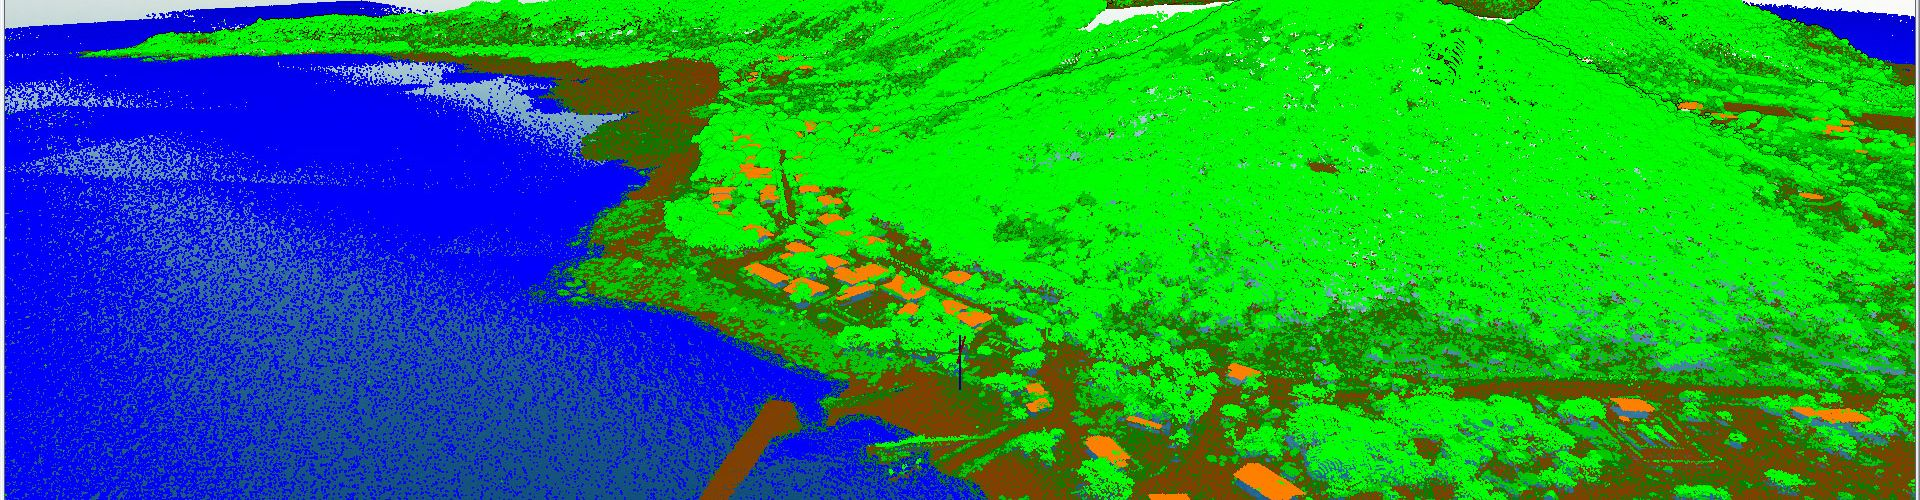 LiDAR point cloud building clutter analysed during microwave link planning